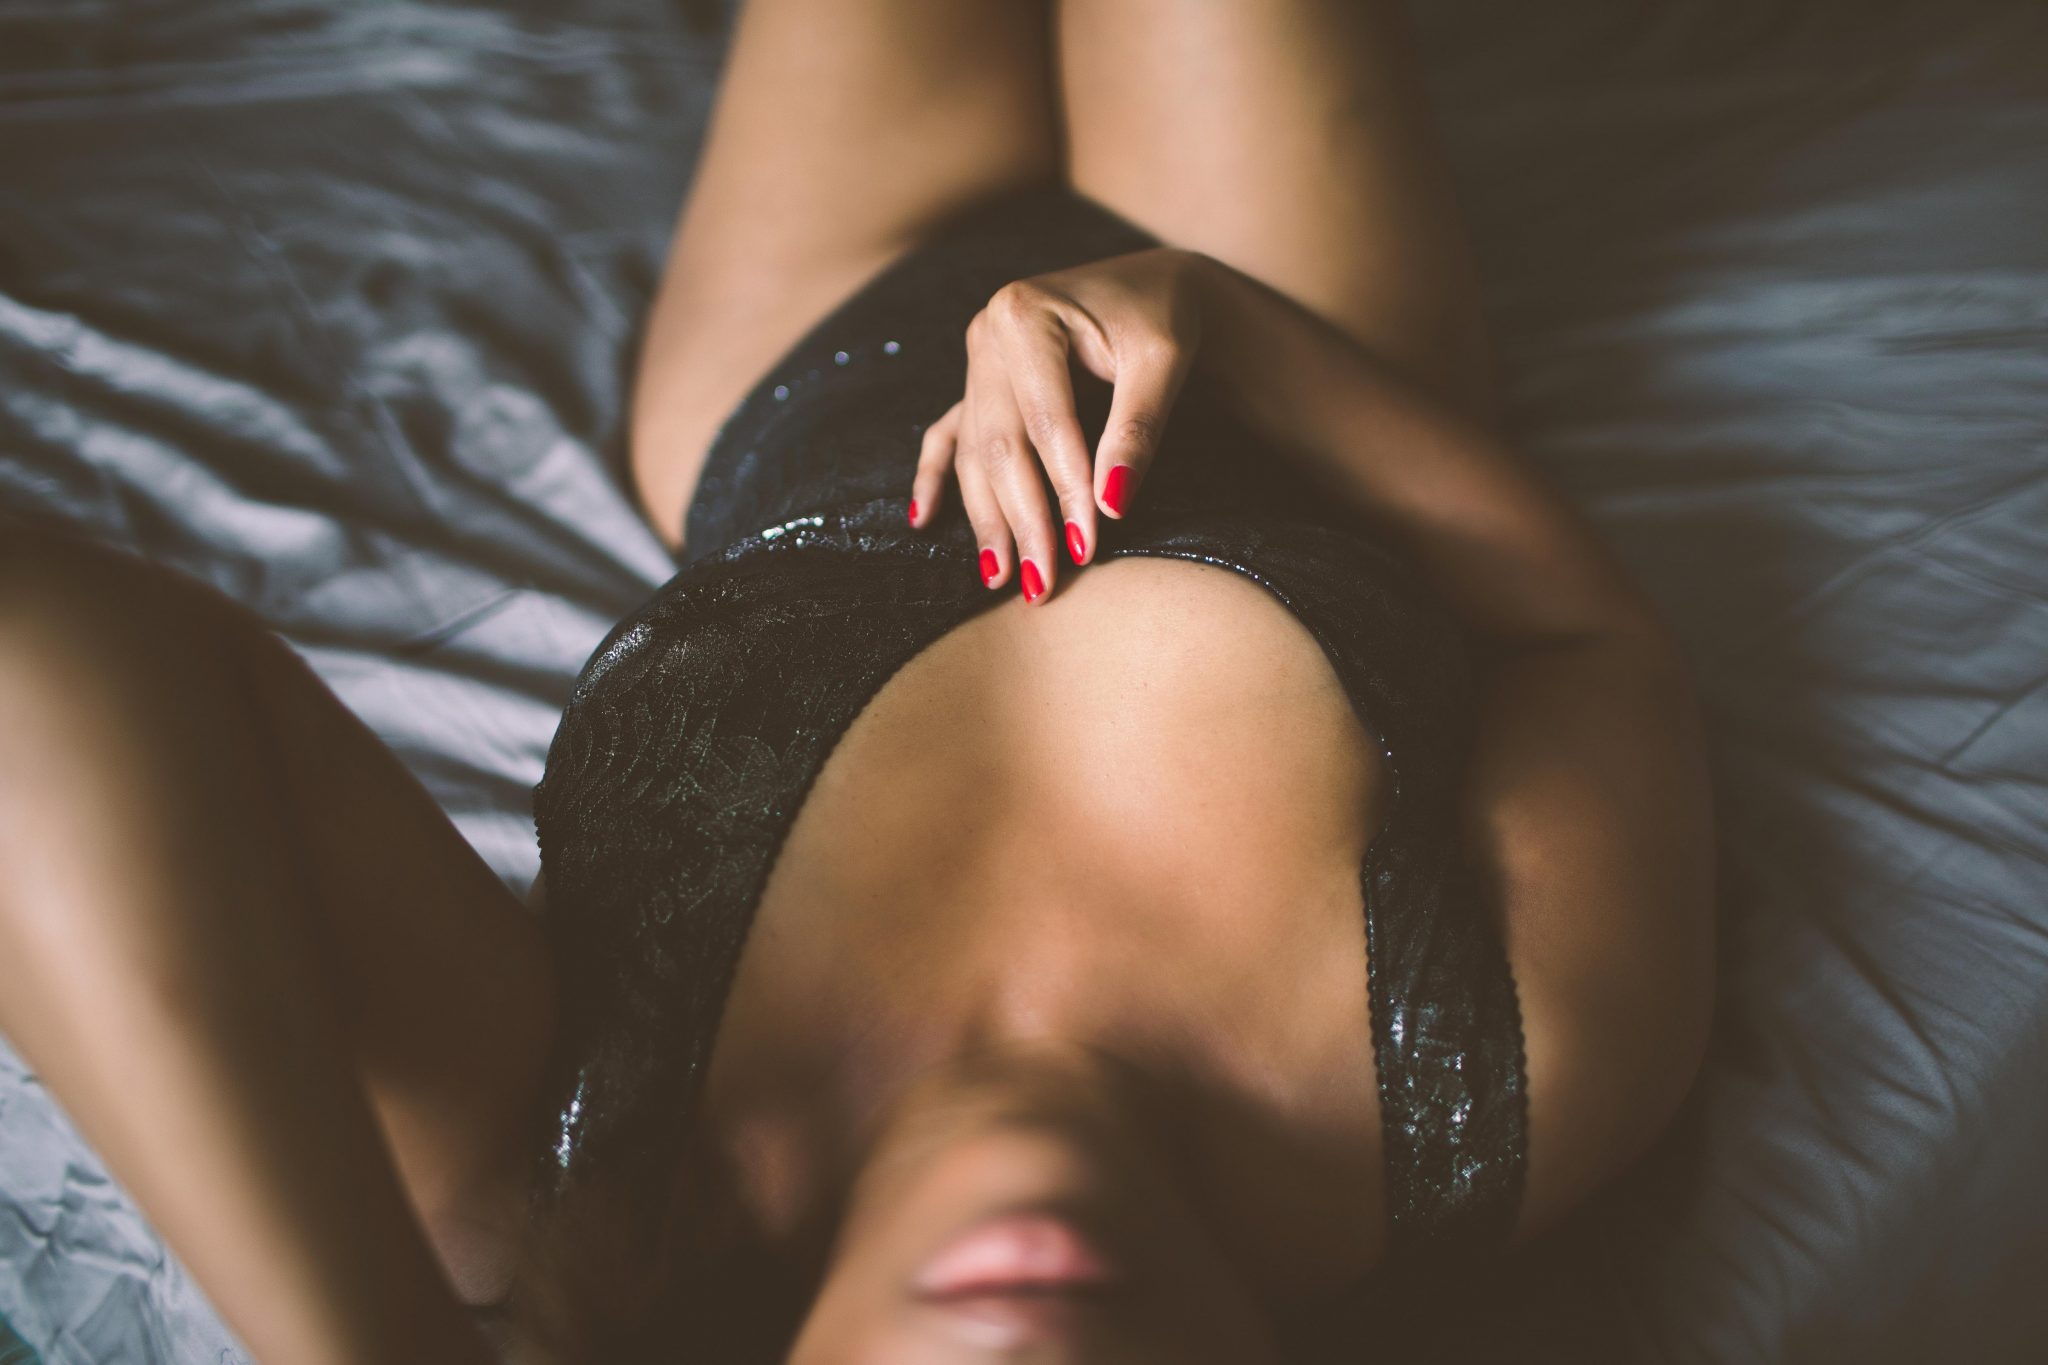 A sensual boudoir photo in New York City